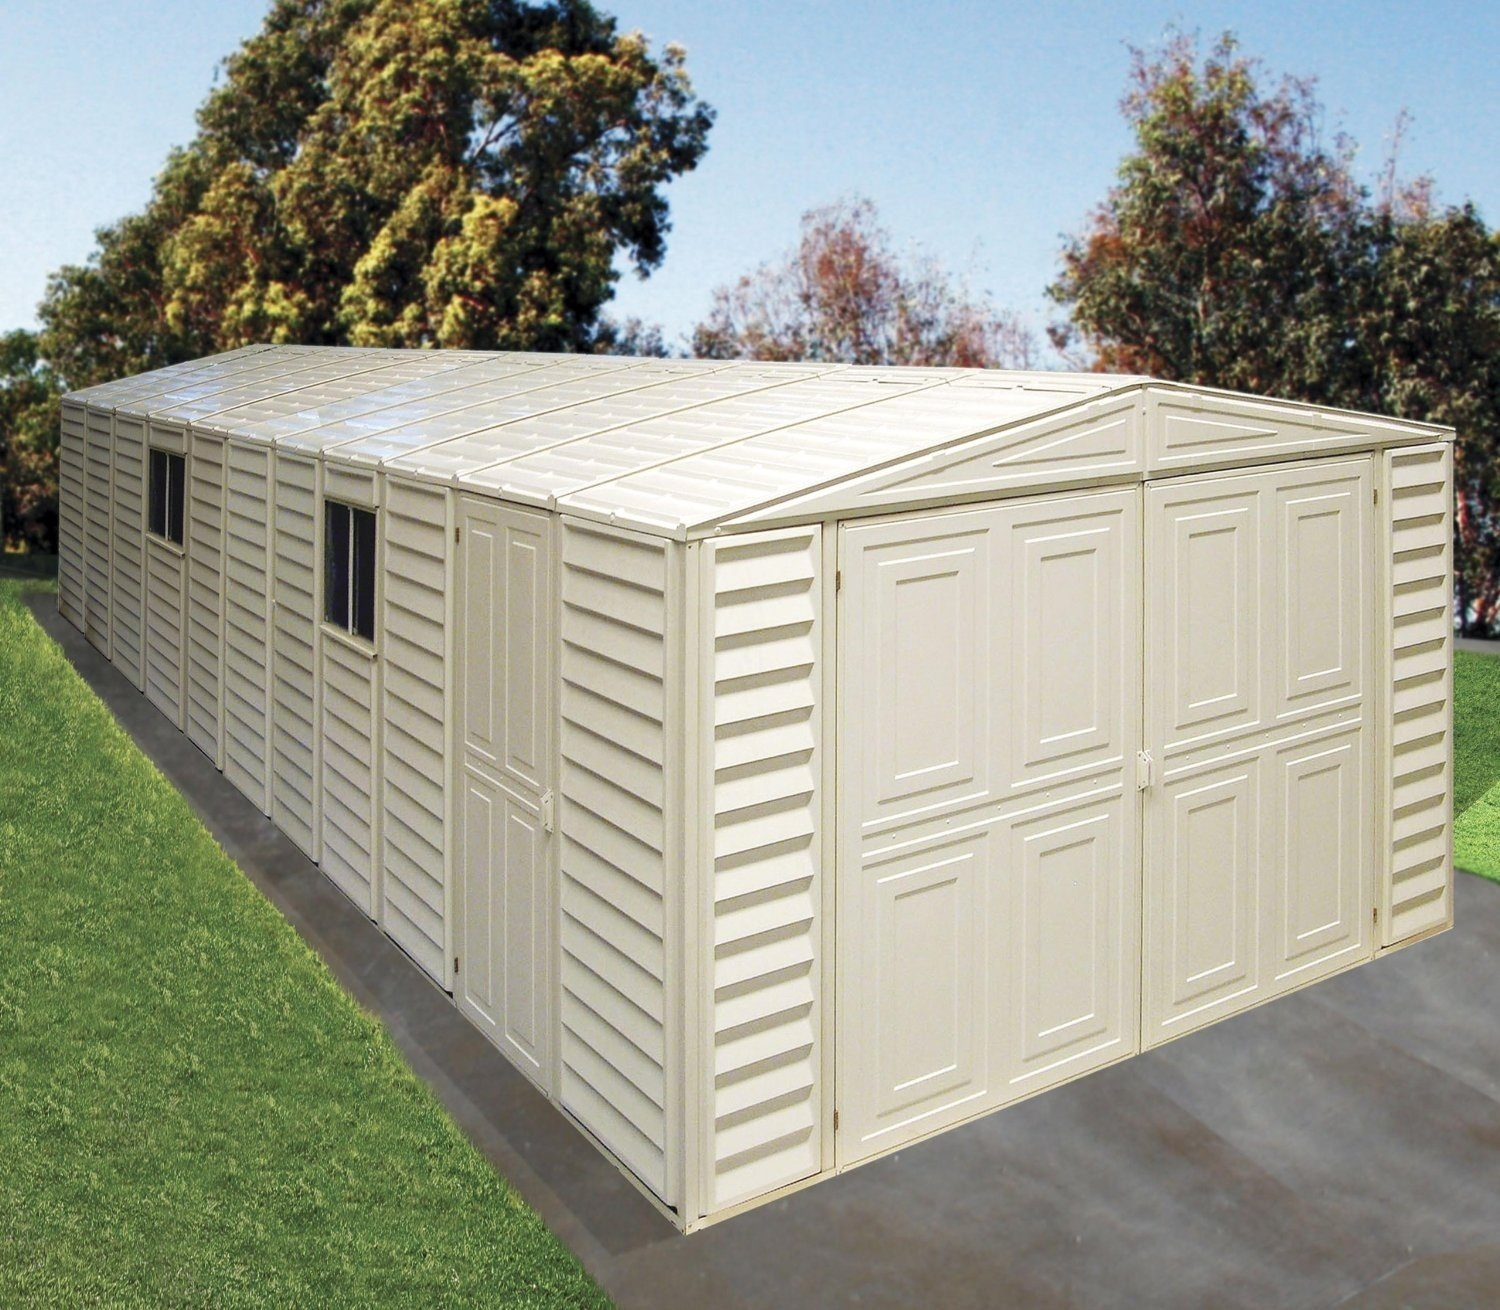 Shed Garage Storage Outdoor Building Car Garden Backyard